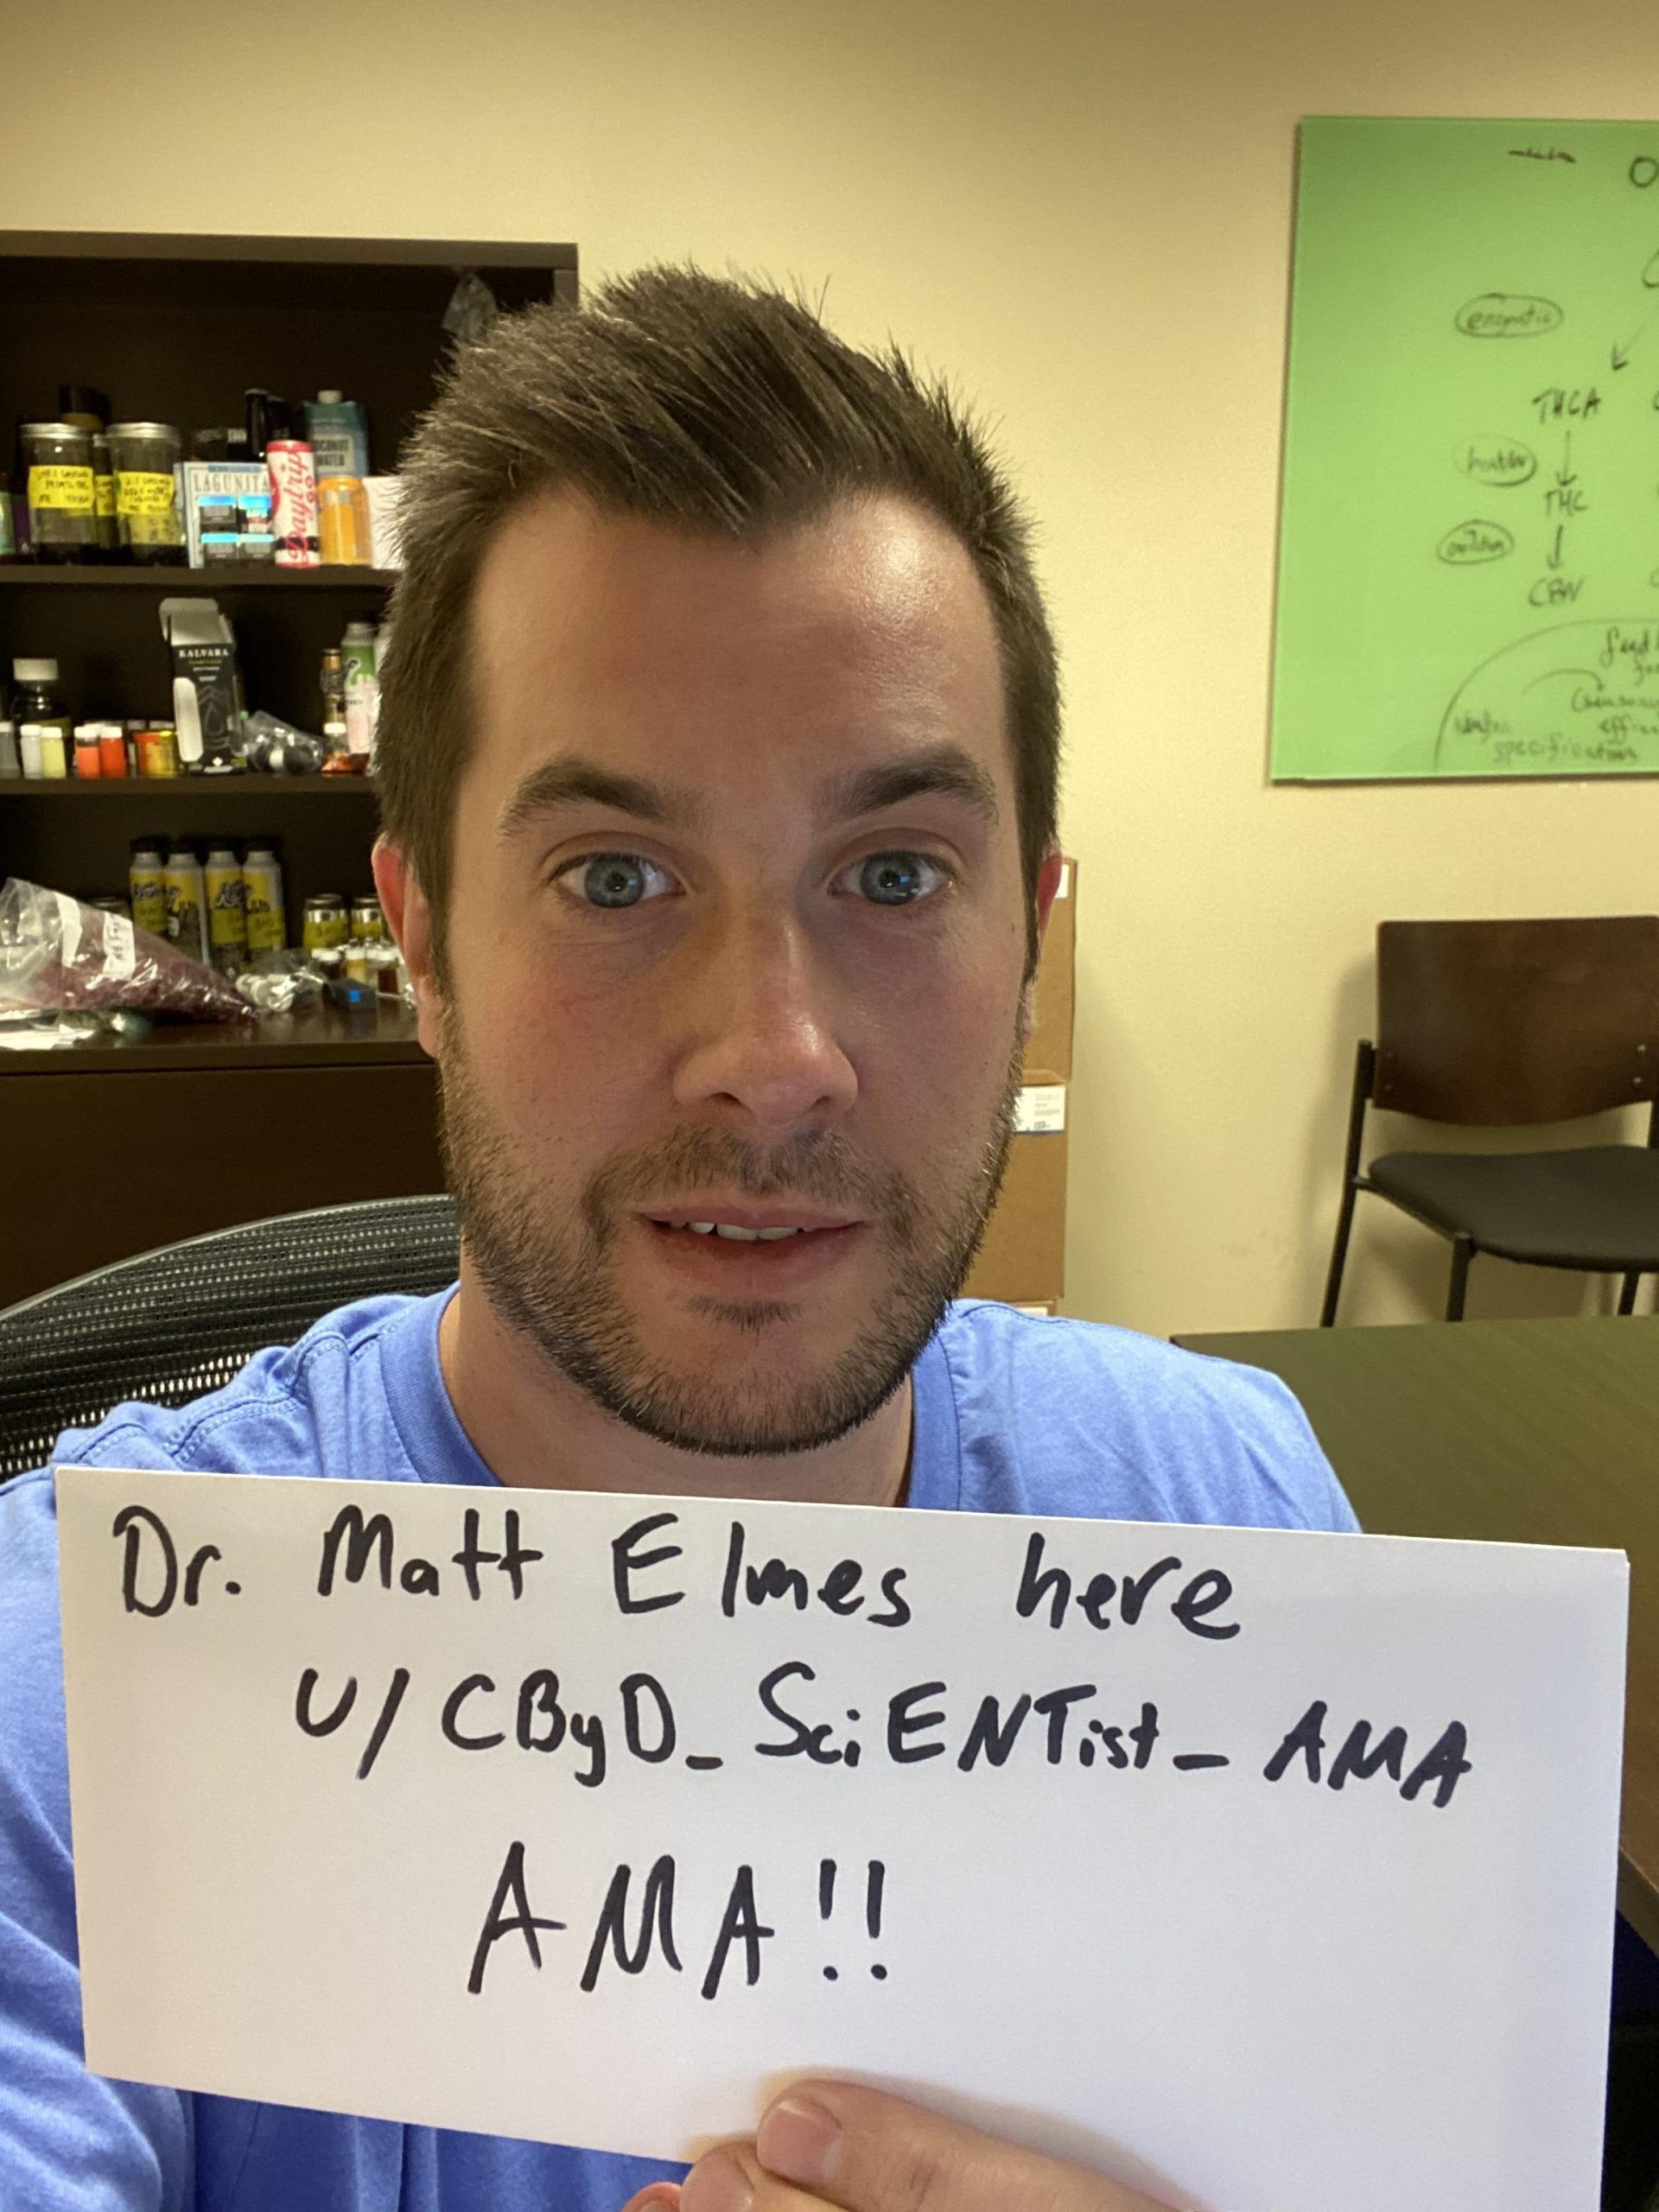 I am Matt Elmes, PhD; Cannabis scientist. After making discoveries about how we process cannabinoids at the cellular level, I transitioned to work in the California cannabis industry. I've also been a regular cannabis user myself for 20 years. Now that you've read my qualifications as Dr. Weed, AMA!